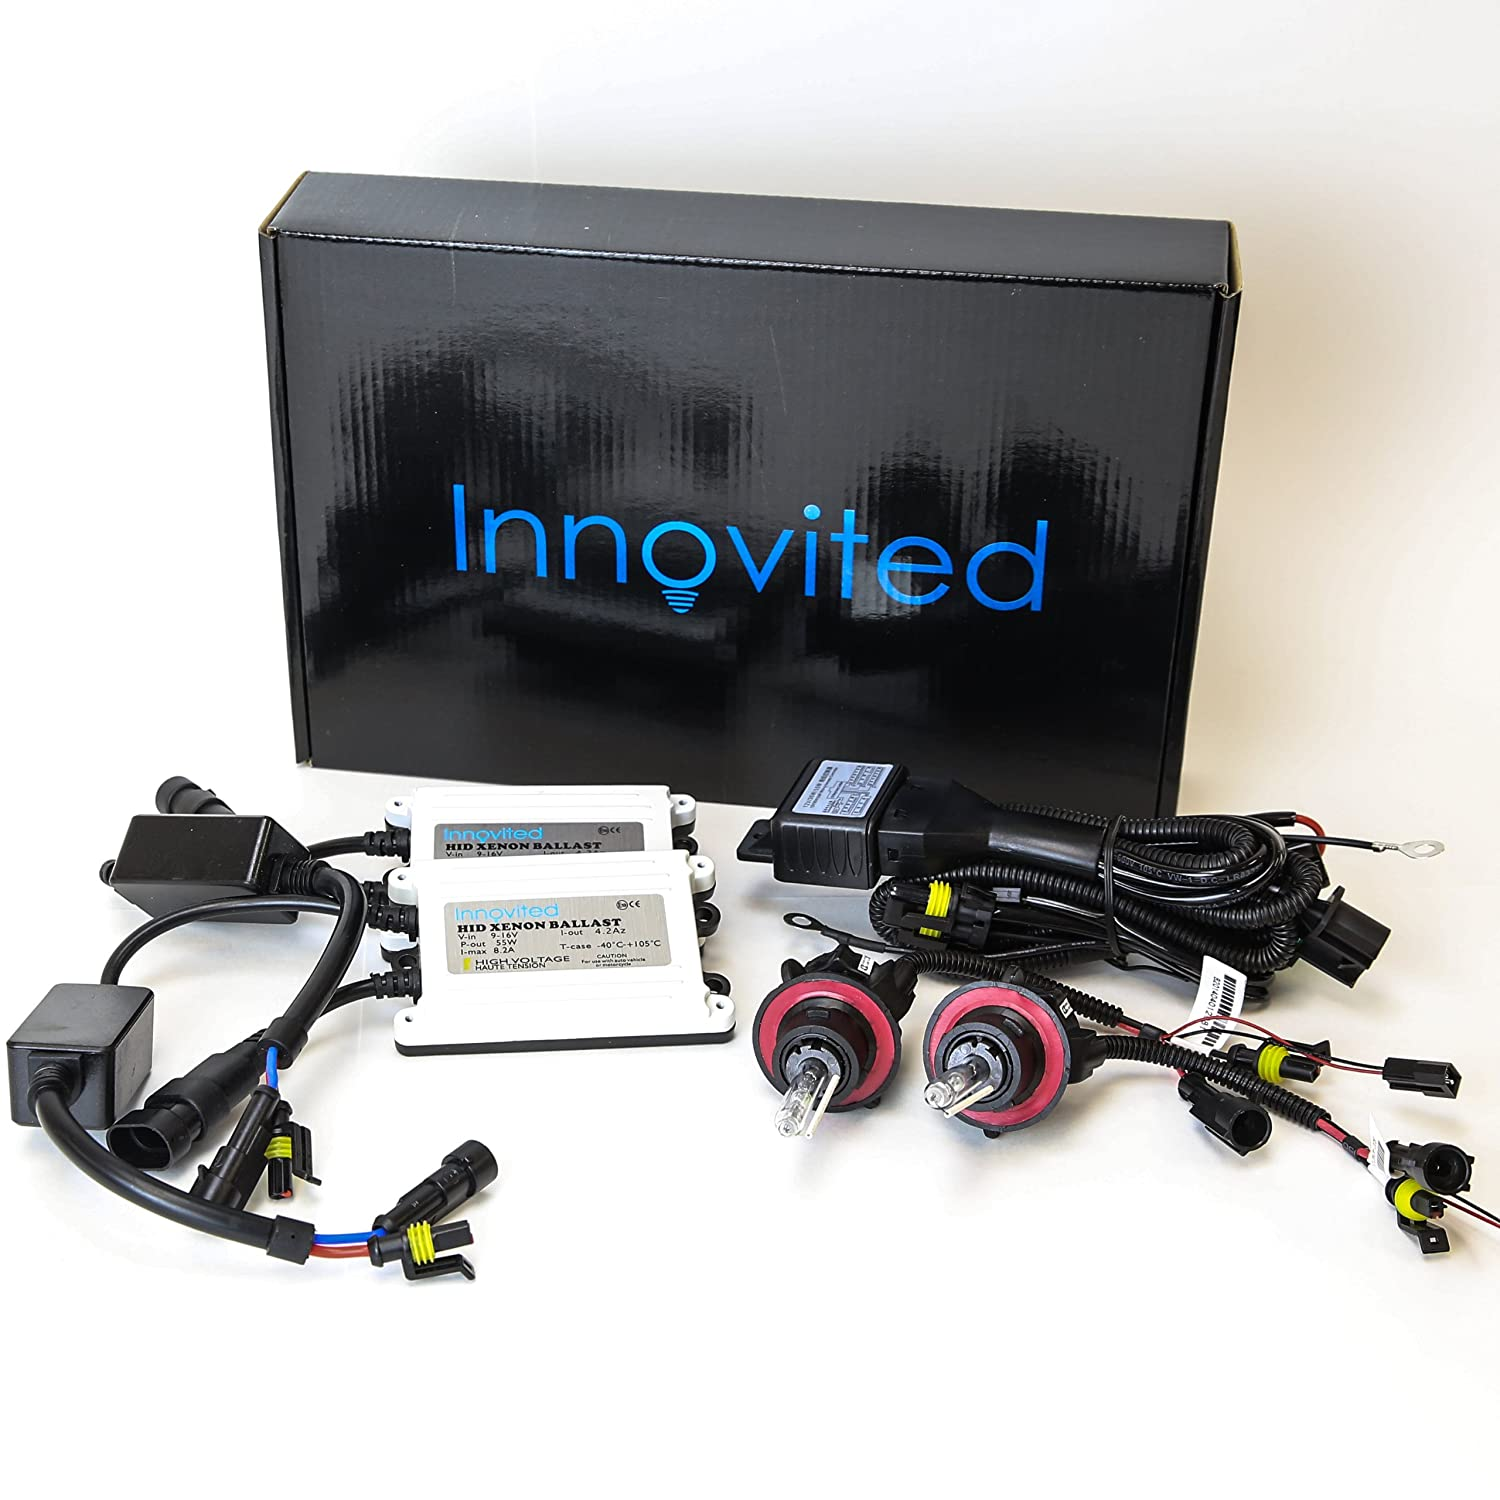 Amazon.com: Innovited AC 55W BI-XENON HI/LOW DUAL BEAM HID Kit - 9004 9007  5000K - 2 Year Warranty: Automotive